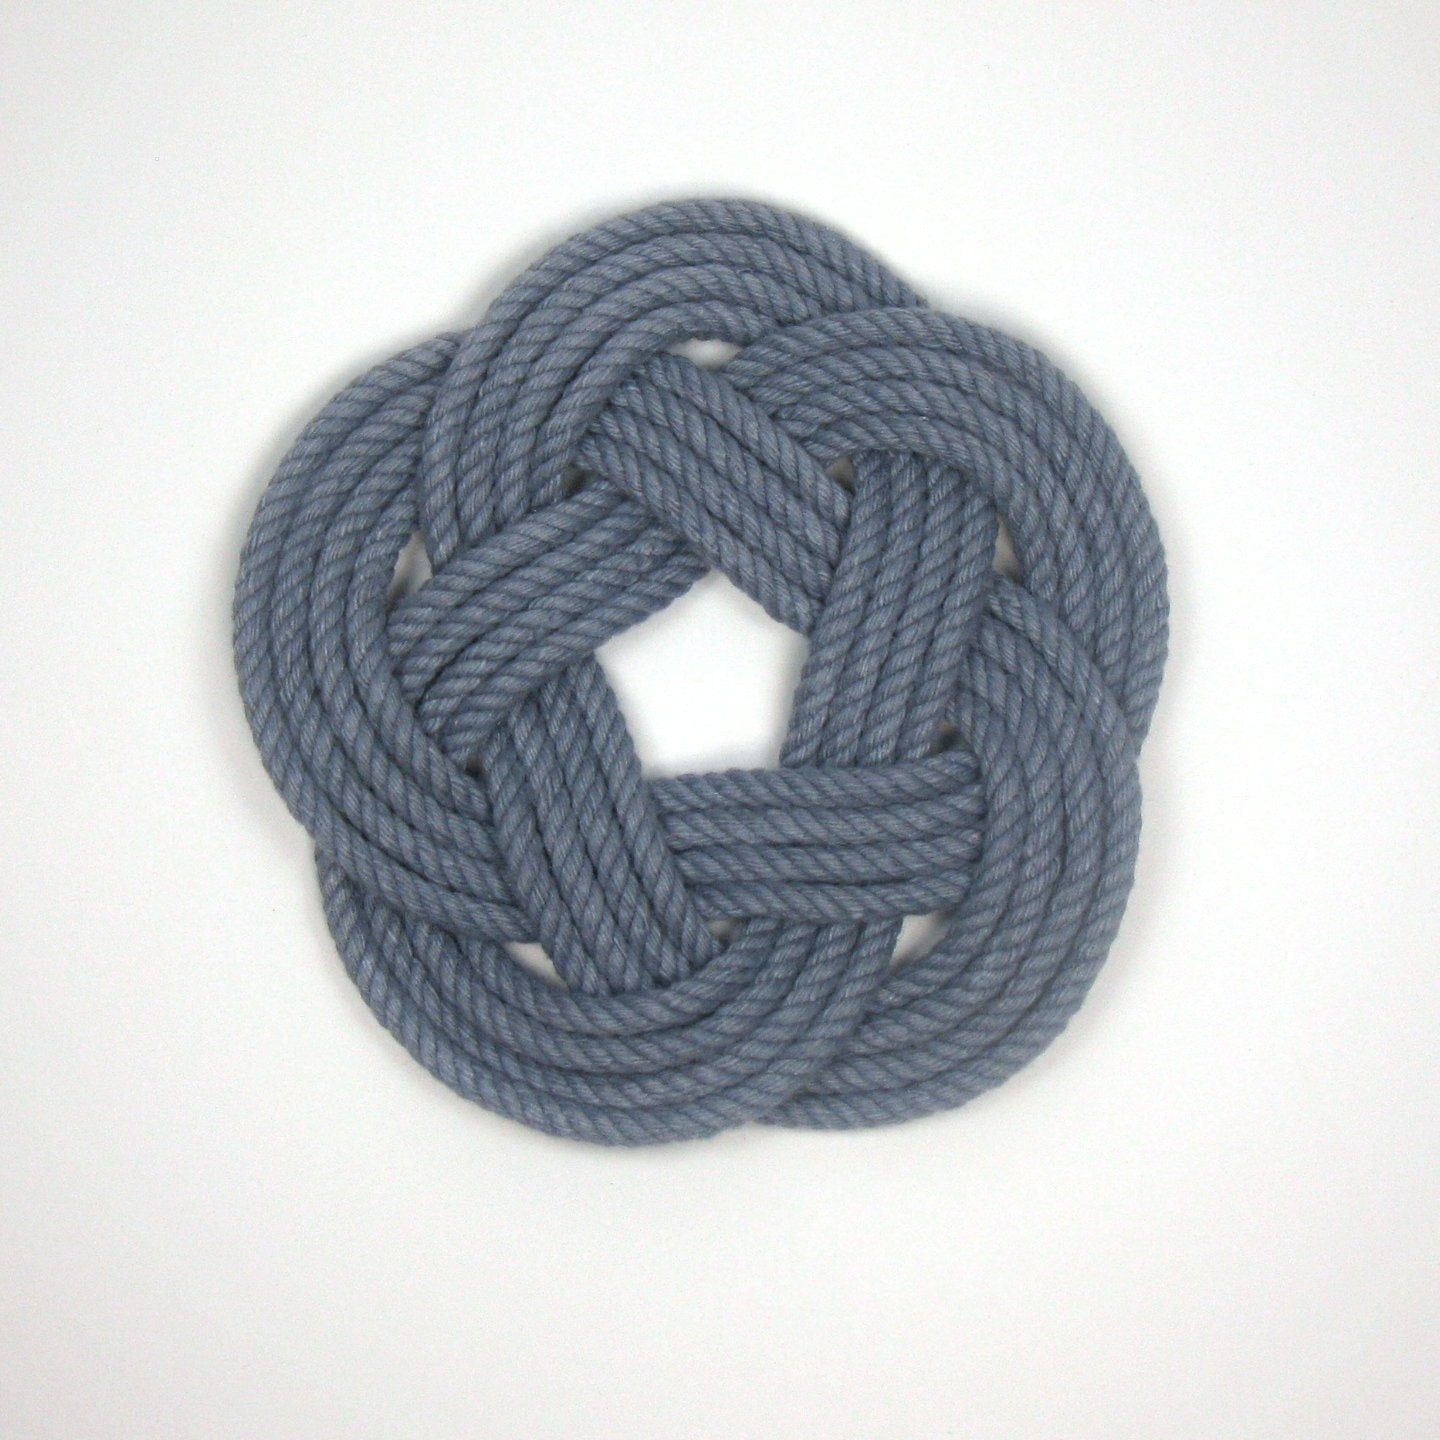 Nautical Sailor Knot Coasters, Woven in Grey , Set of 4 Handmade sailor knot American Made in Mystic, CT $ 20.00